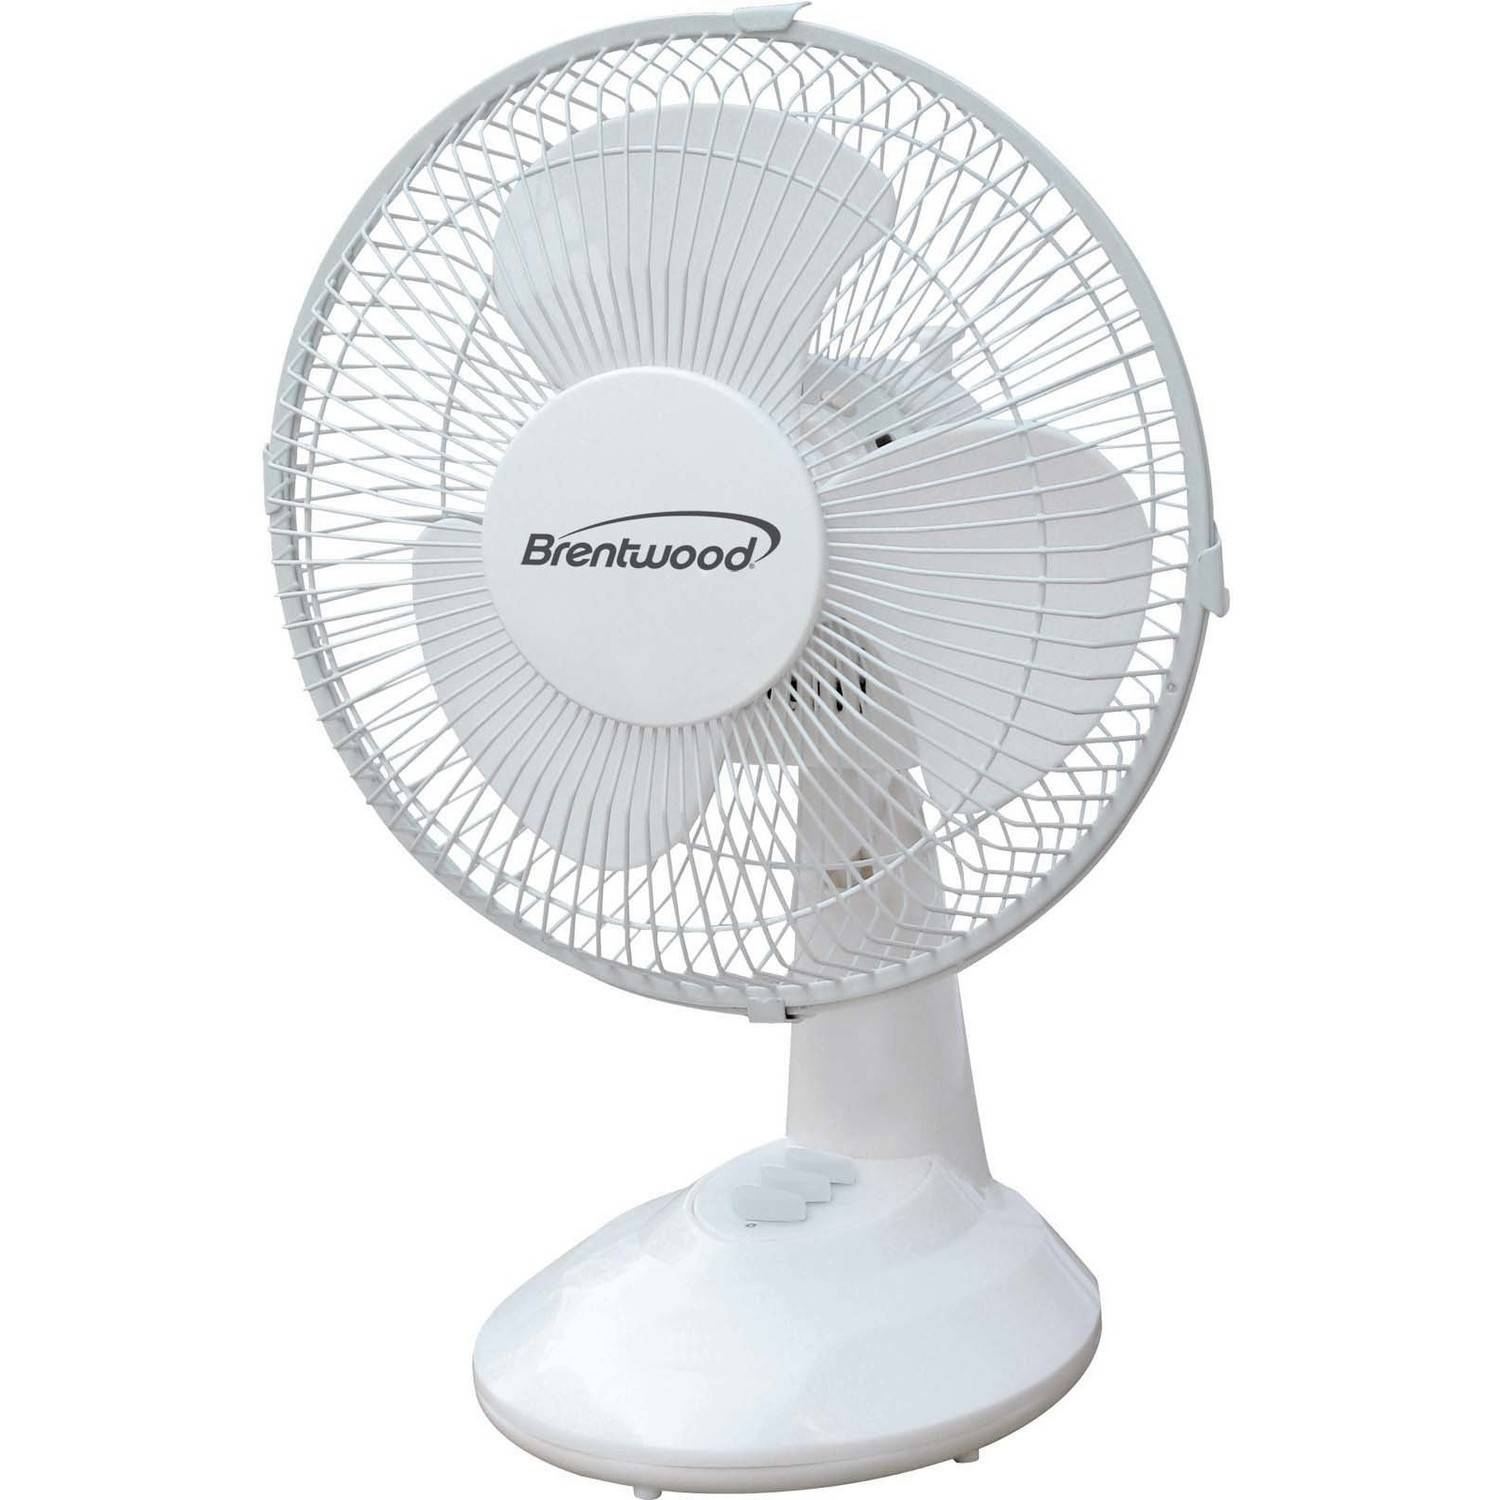 "Brentwood 9"" Oscillating Desk Fan"